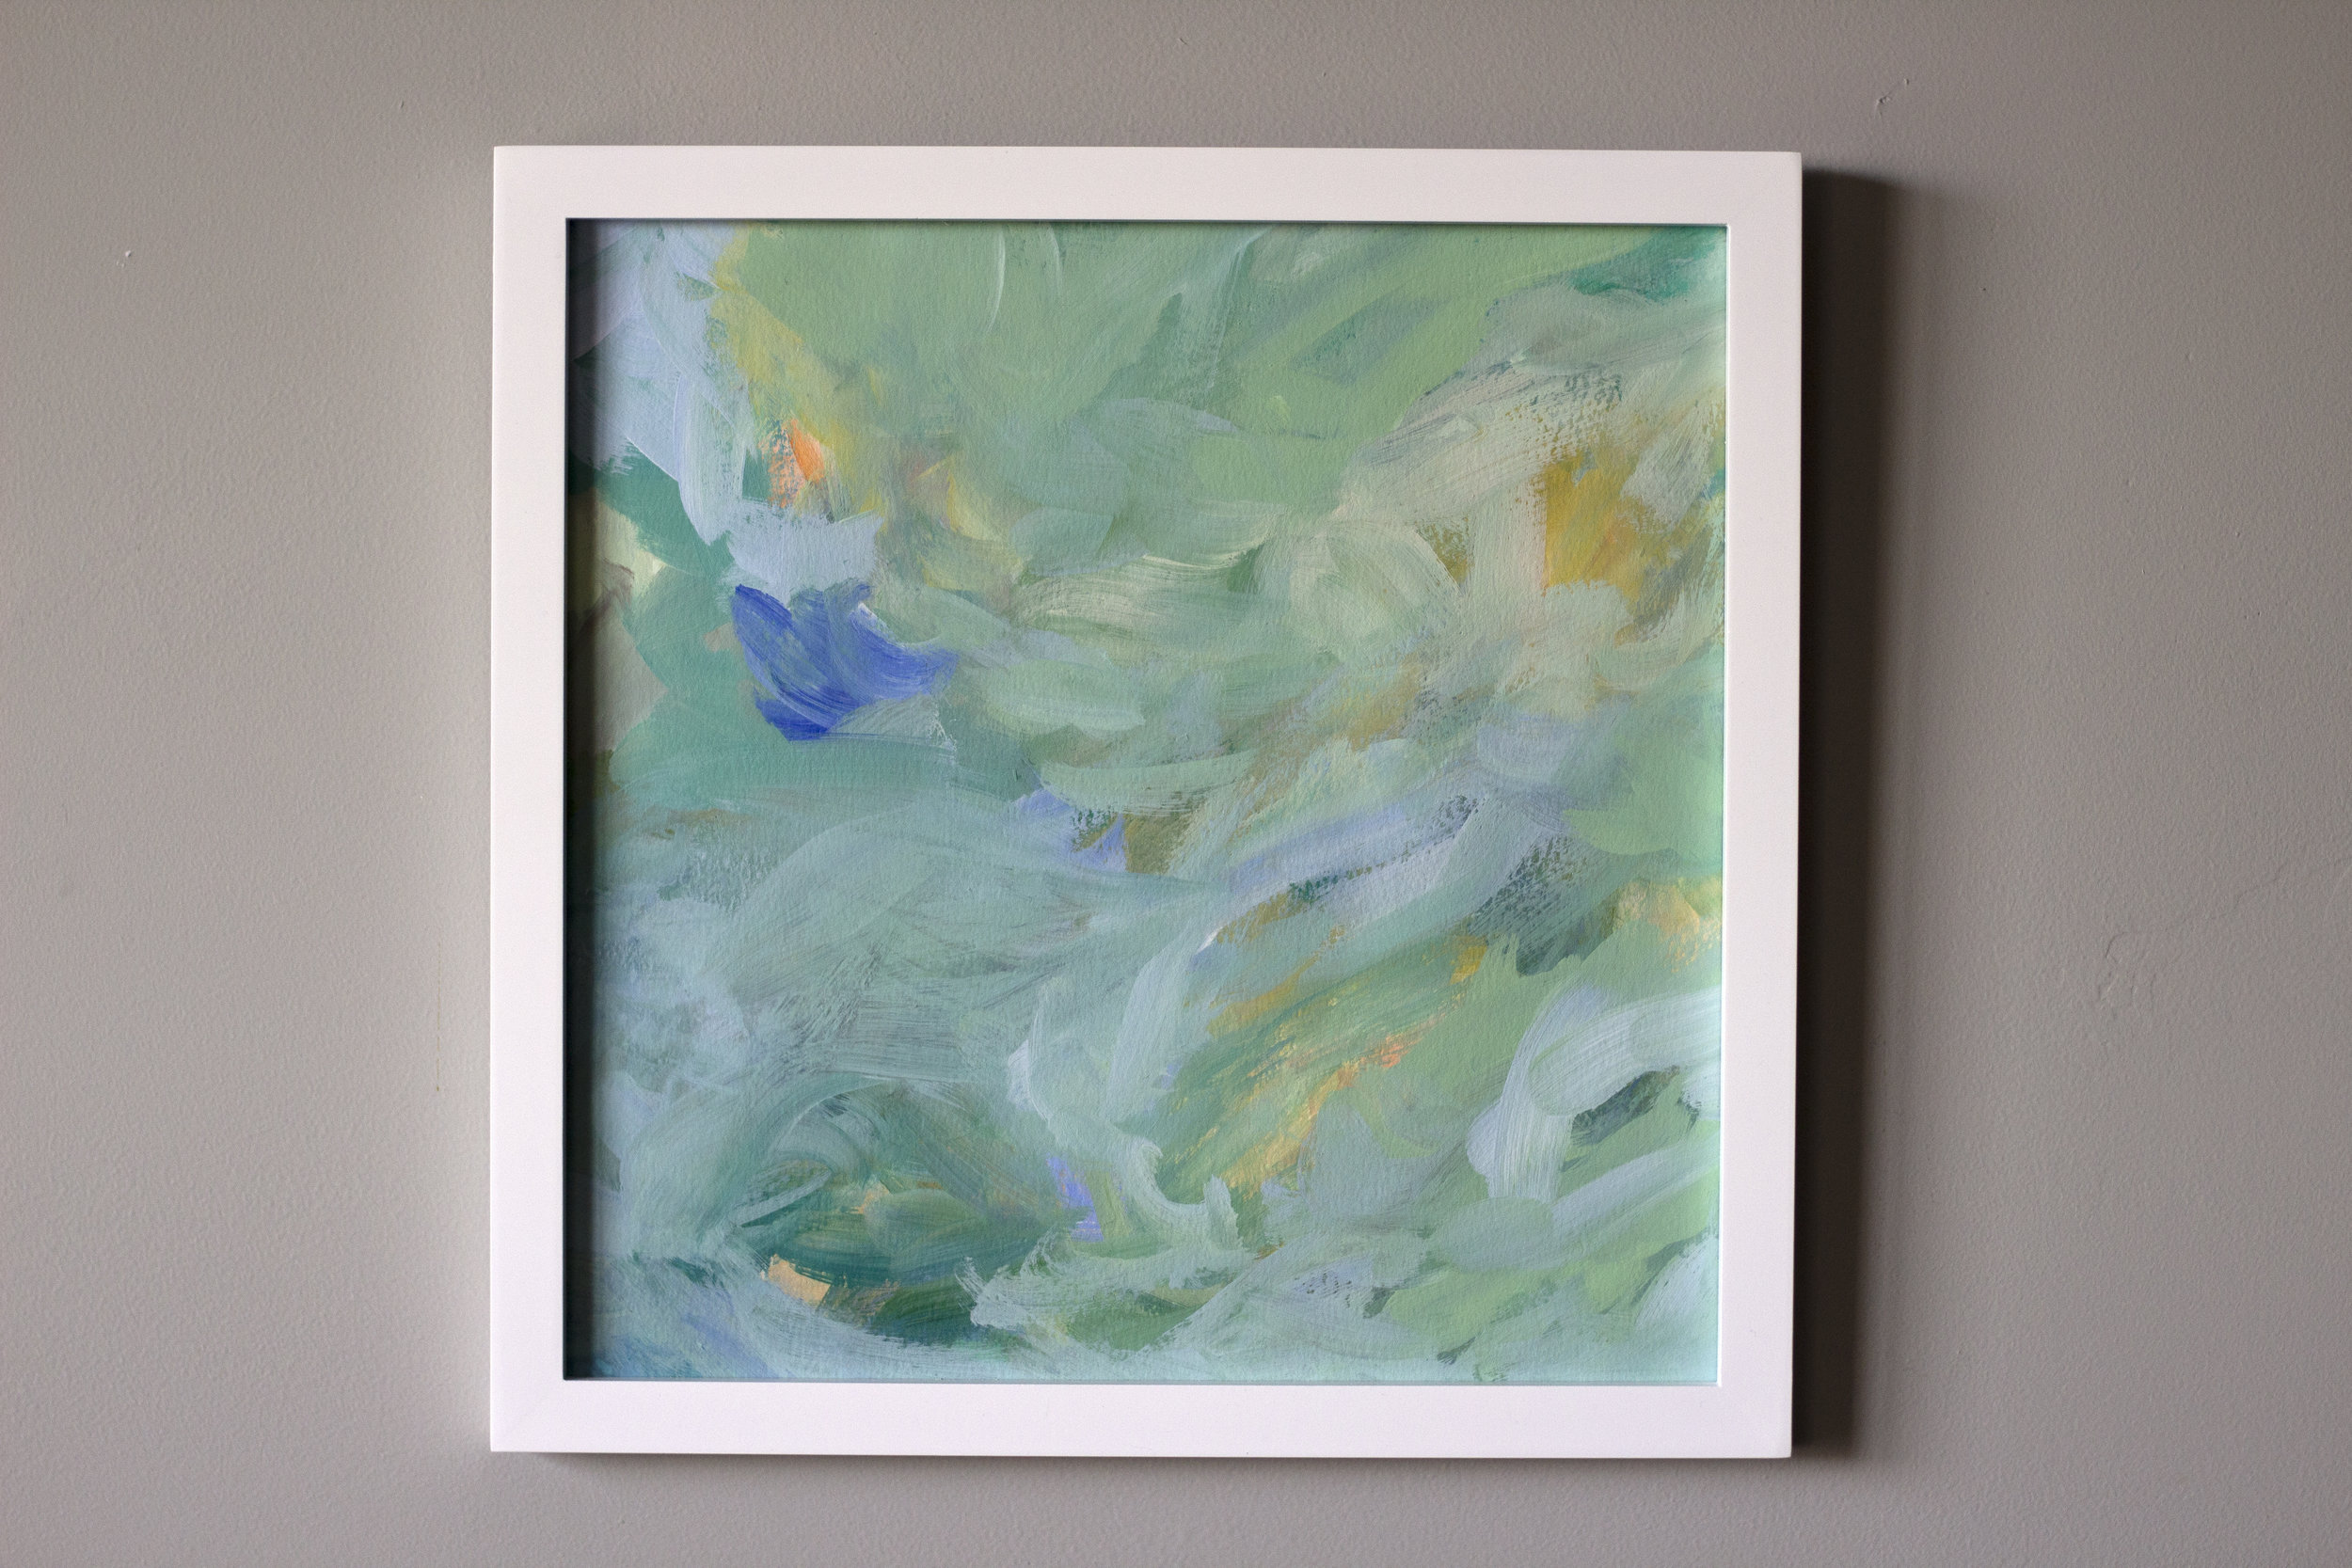 Small 12x12 inch Provence abstract painting by Stephanie Kirkland artist.jpg